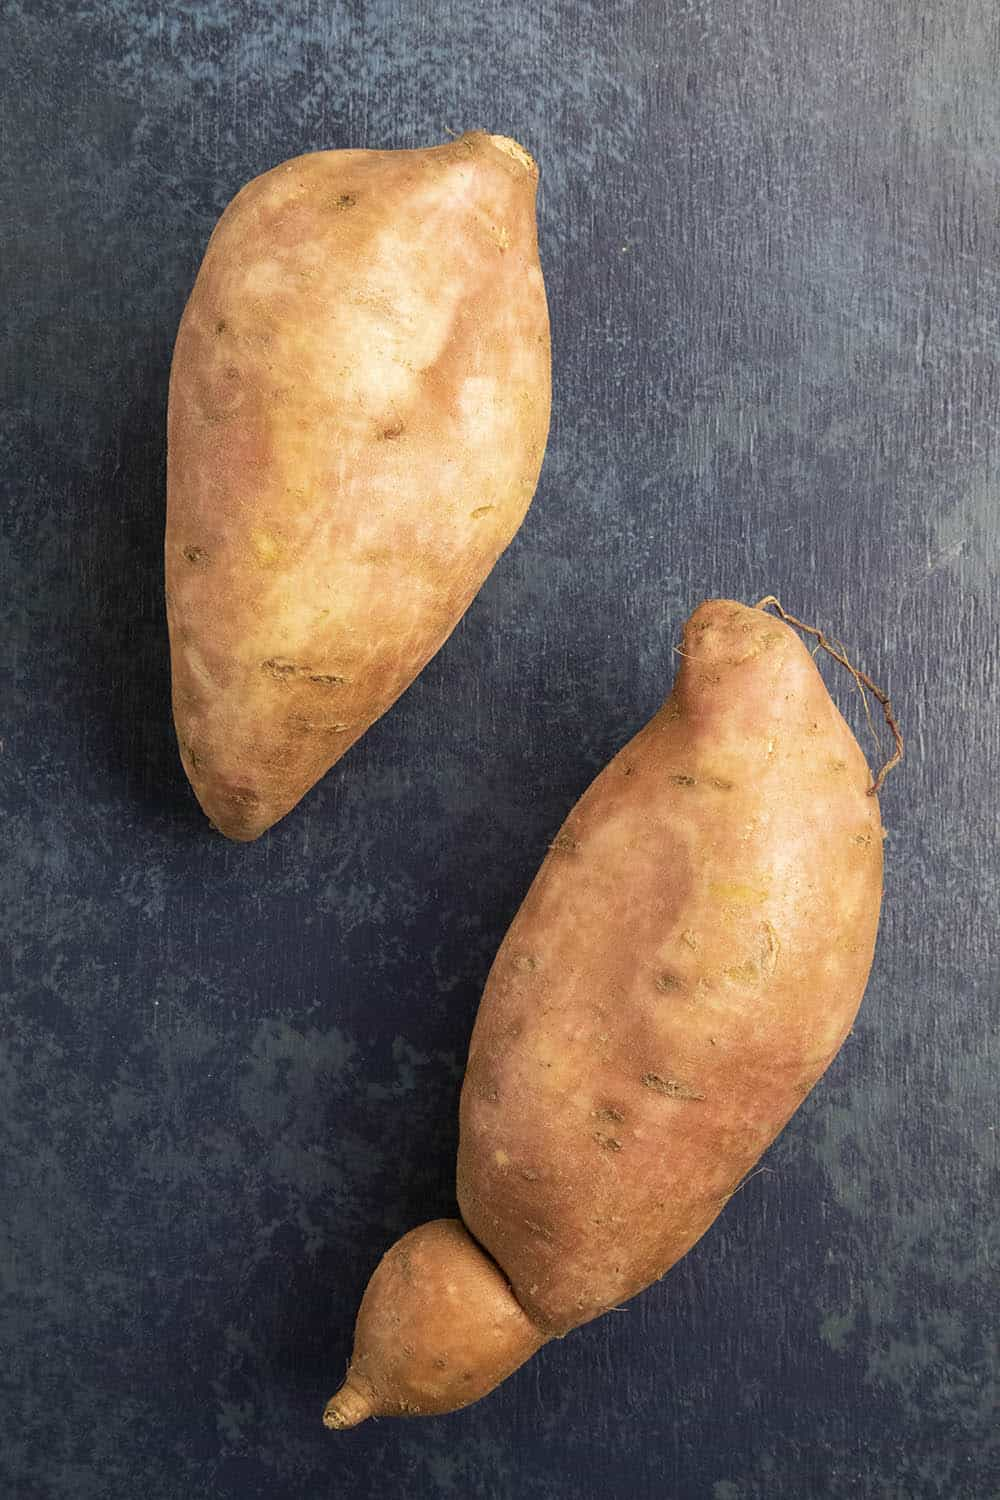 Two large Sweet Potatoes